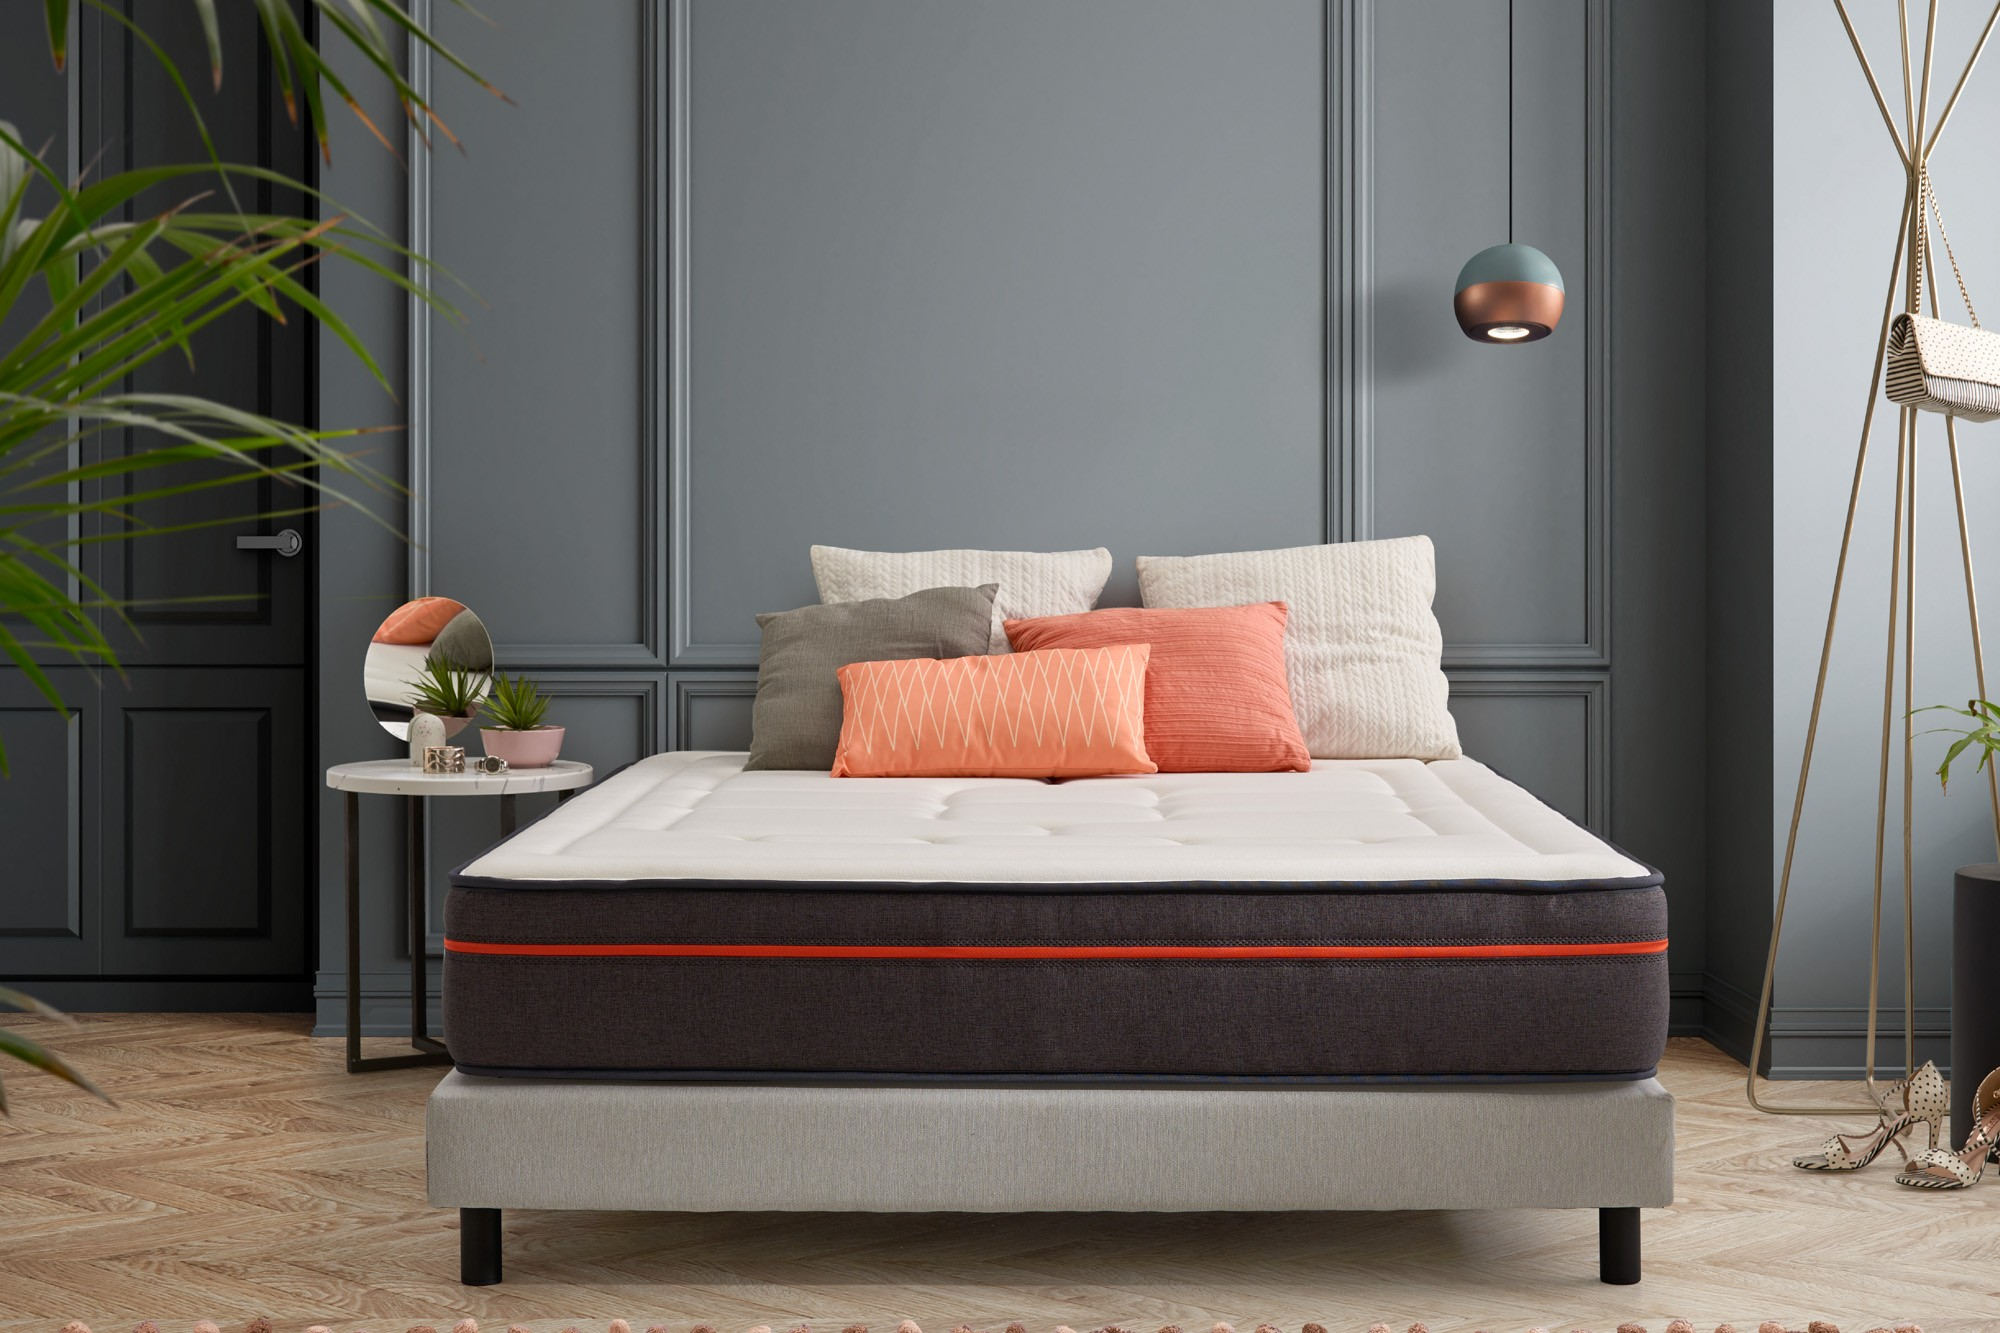 The memory foam layer: provides relaxation of contractions and muscle tension for all points of support and helps to maintain the spine properly in order to avoid back pain,